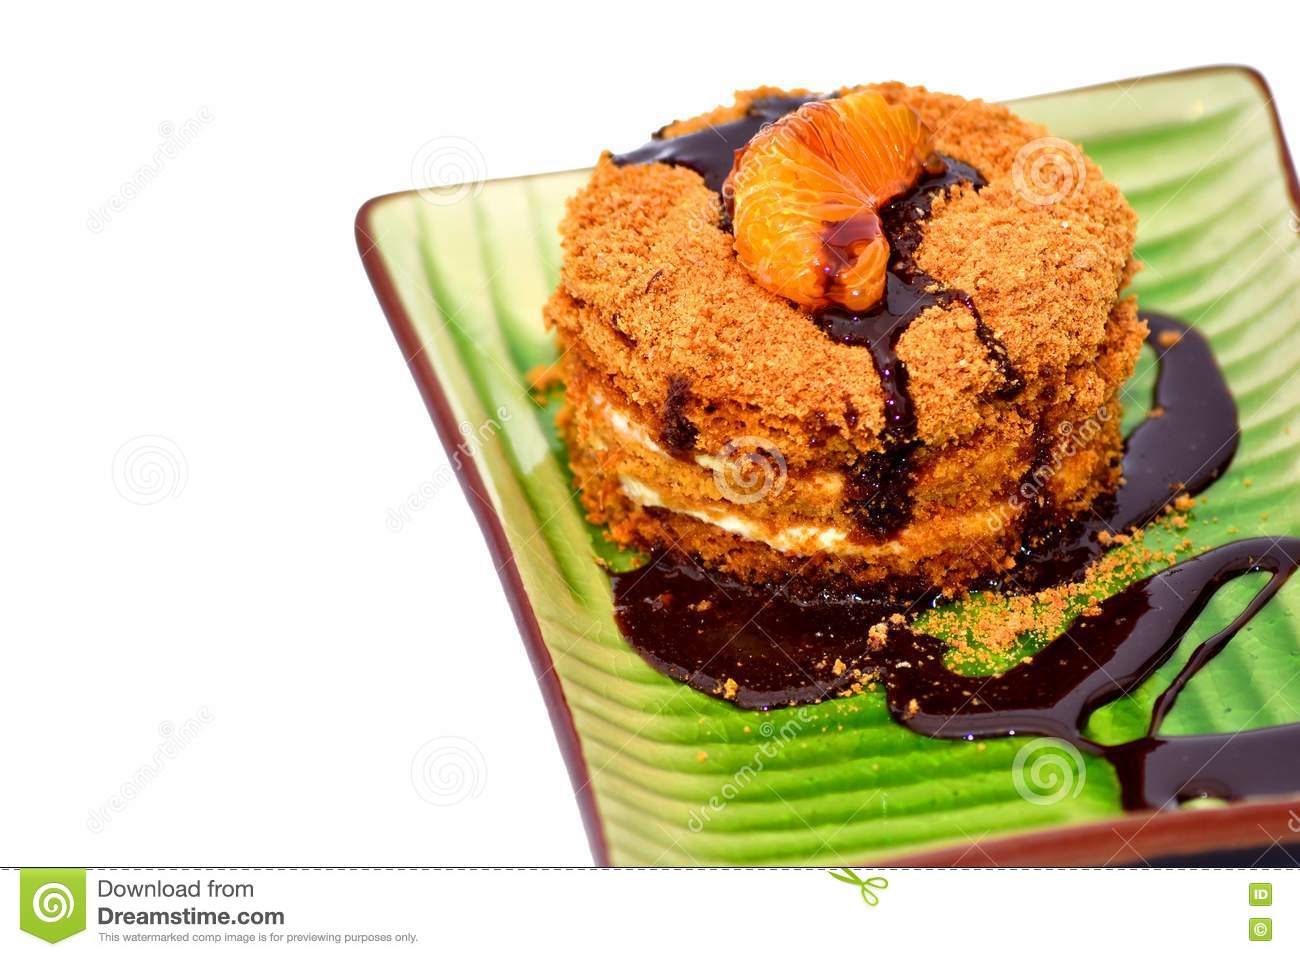 Clipart Of Honey Cake : Honey Cake Royalty Free Stock Photo - Image: 22481525